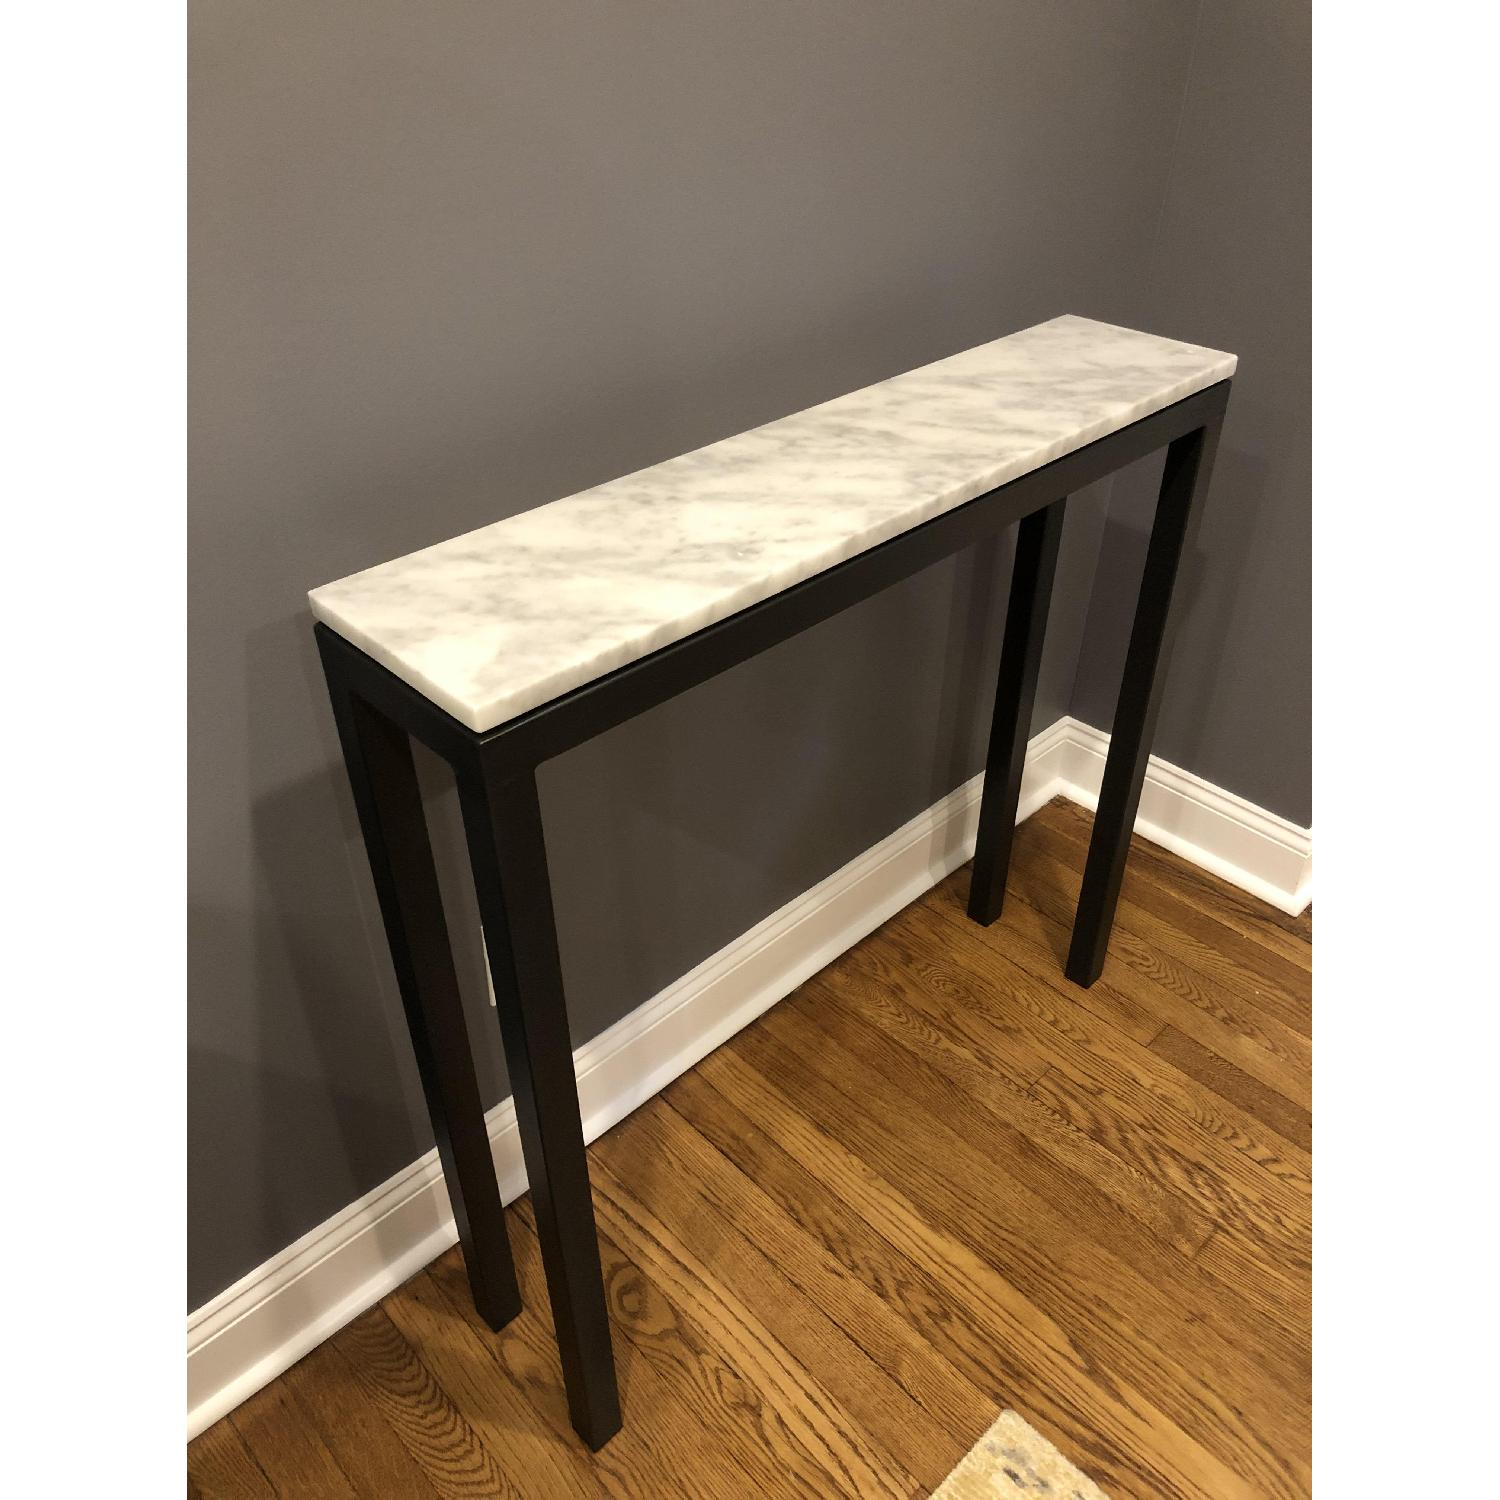 Room & Board Marble Top Console Table - image-3